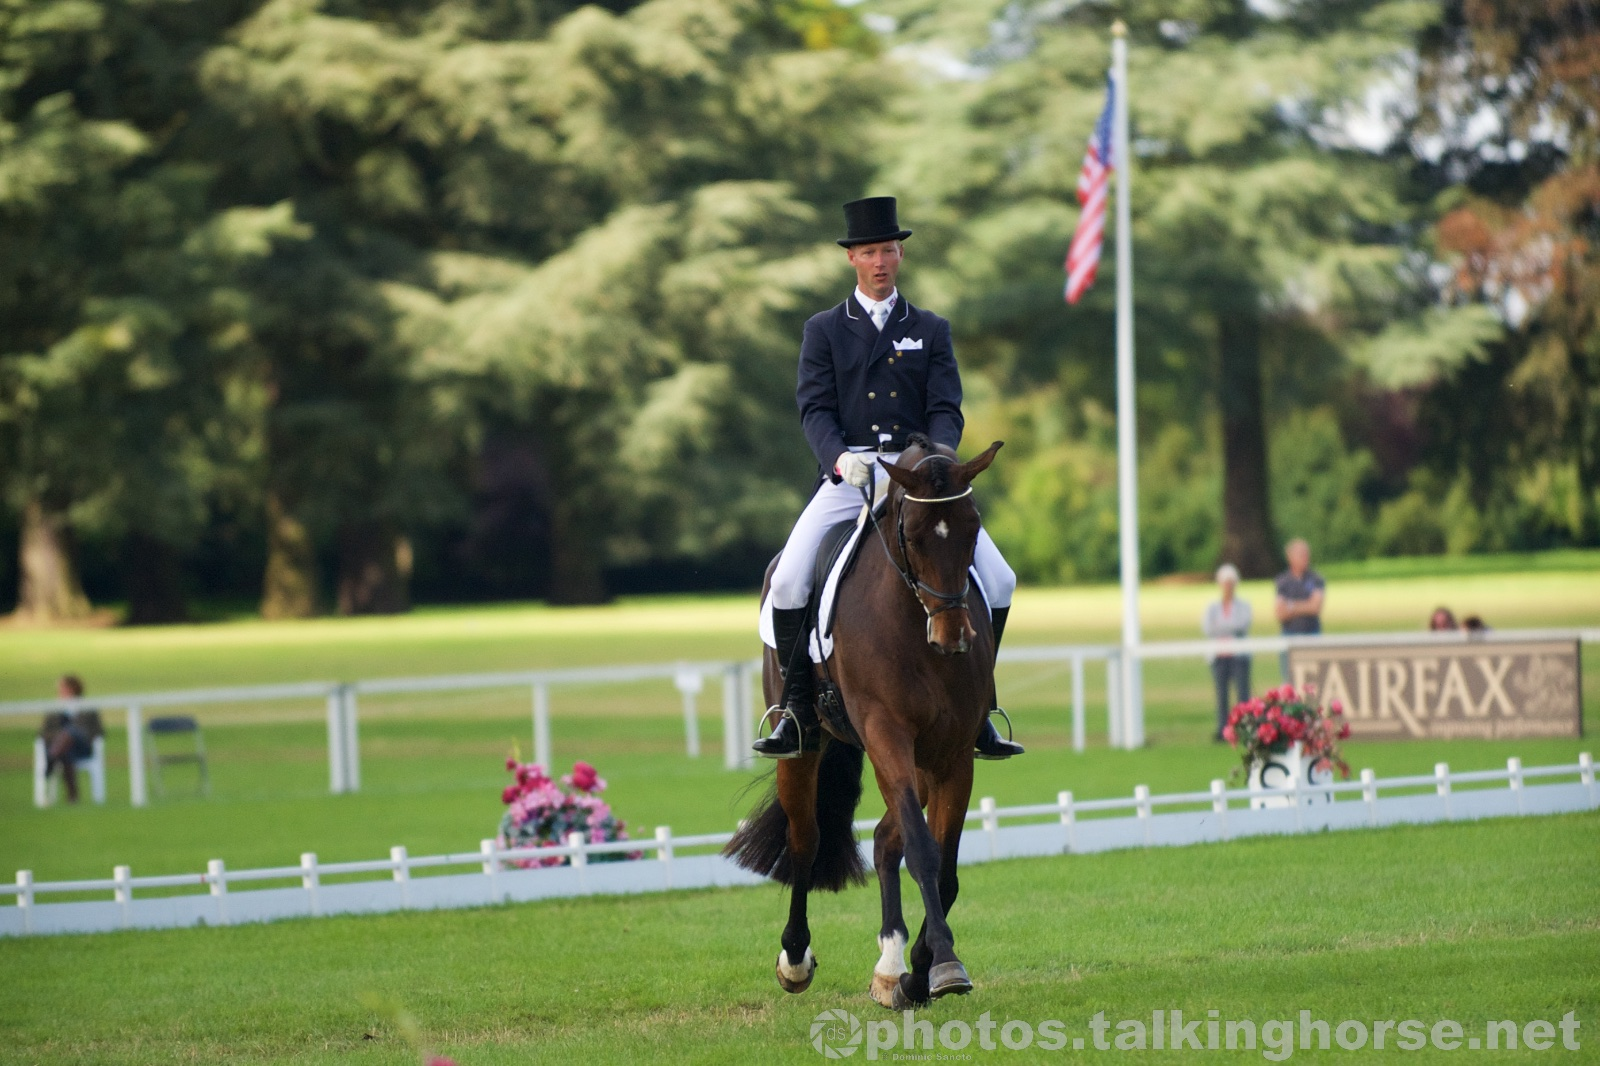 Clark Montgomery & Loughan Glen Lead The Field After Dressage